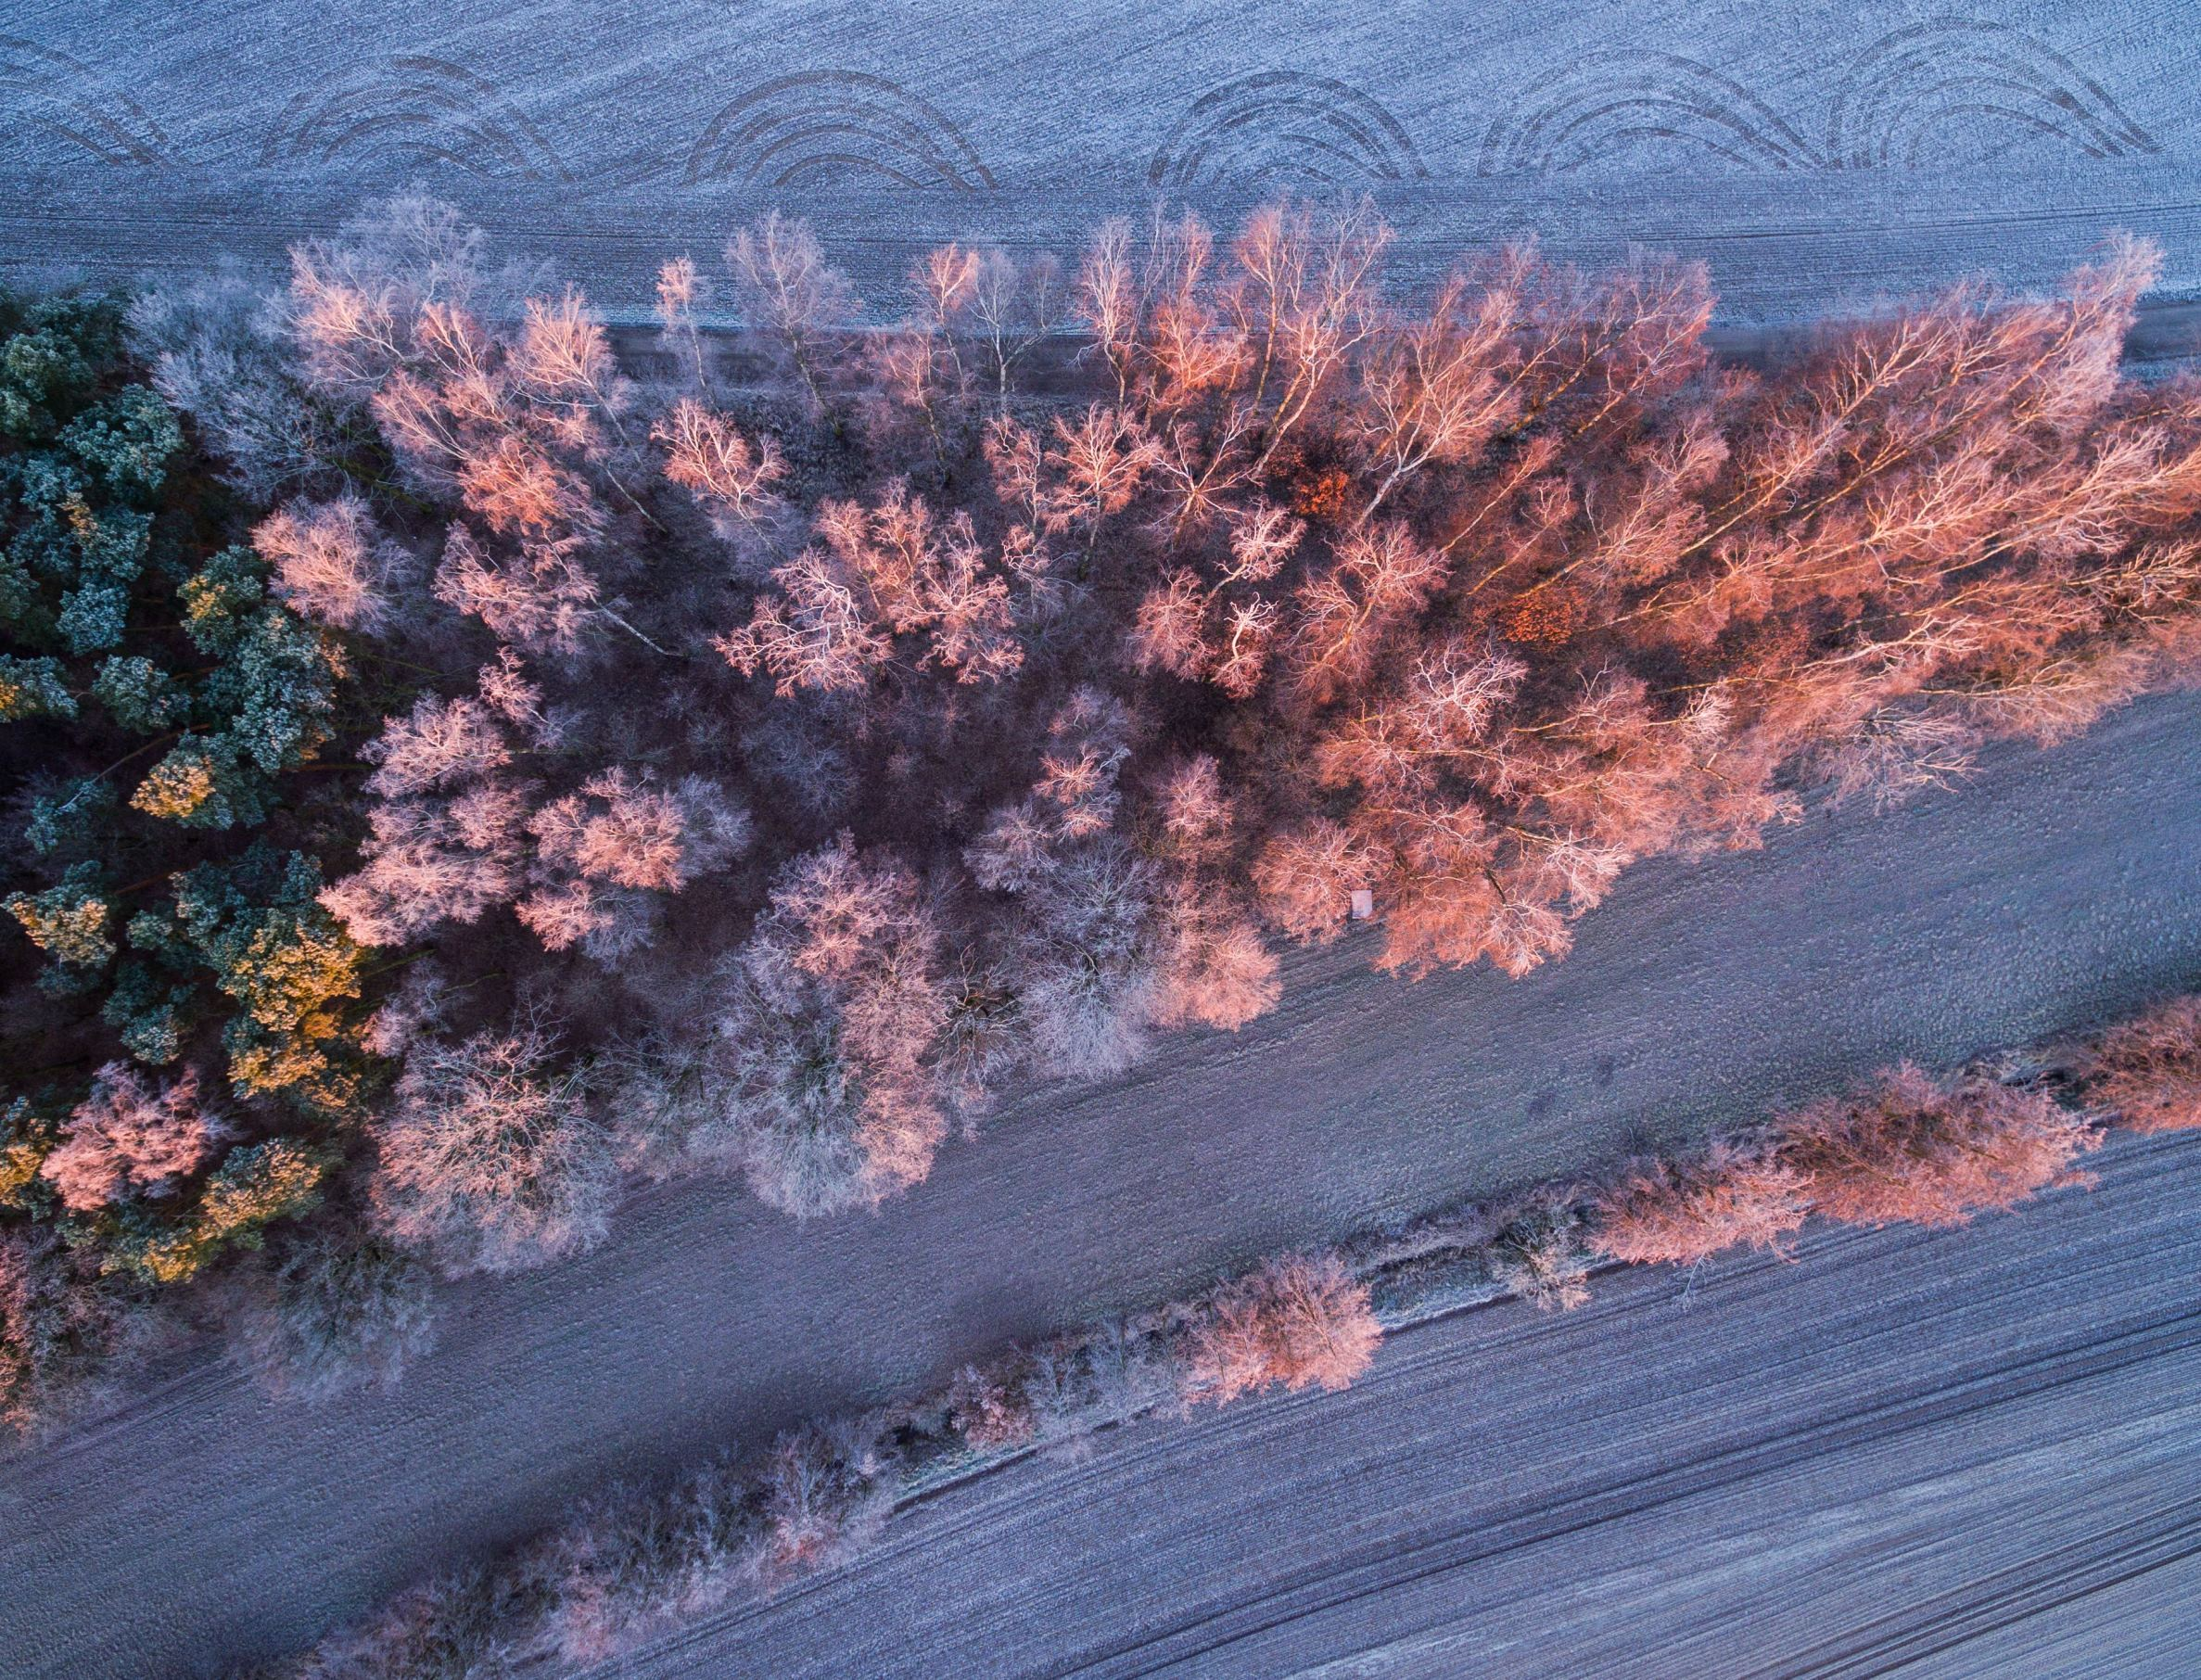 Slide 22 of 100: An aerial view taken by a drone shows the warm light of the rising sun shining on the frost-covered landscape near Jacobsdorf, Germany, 31 December 2016.